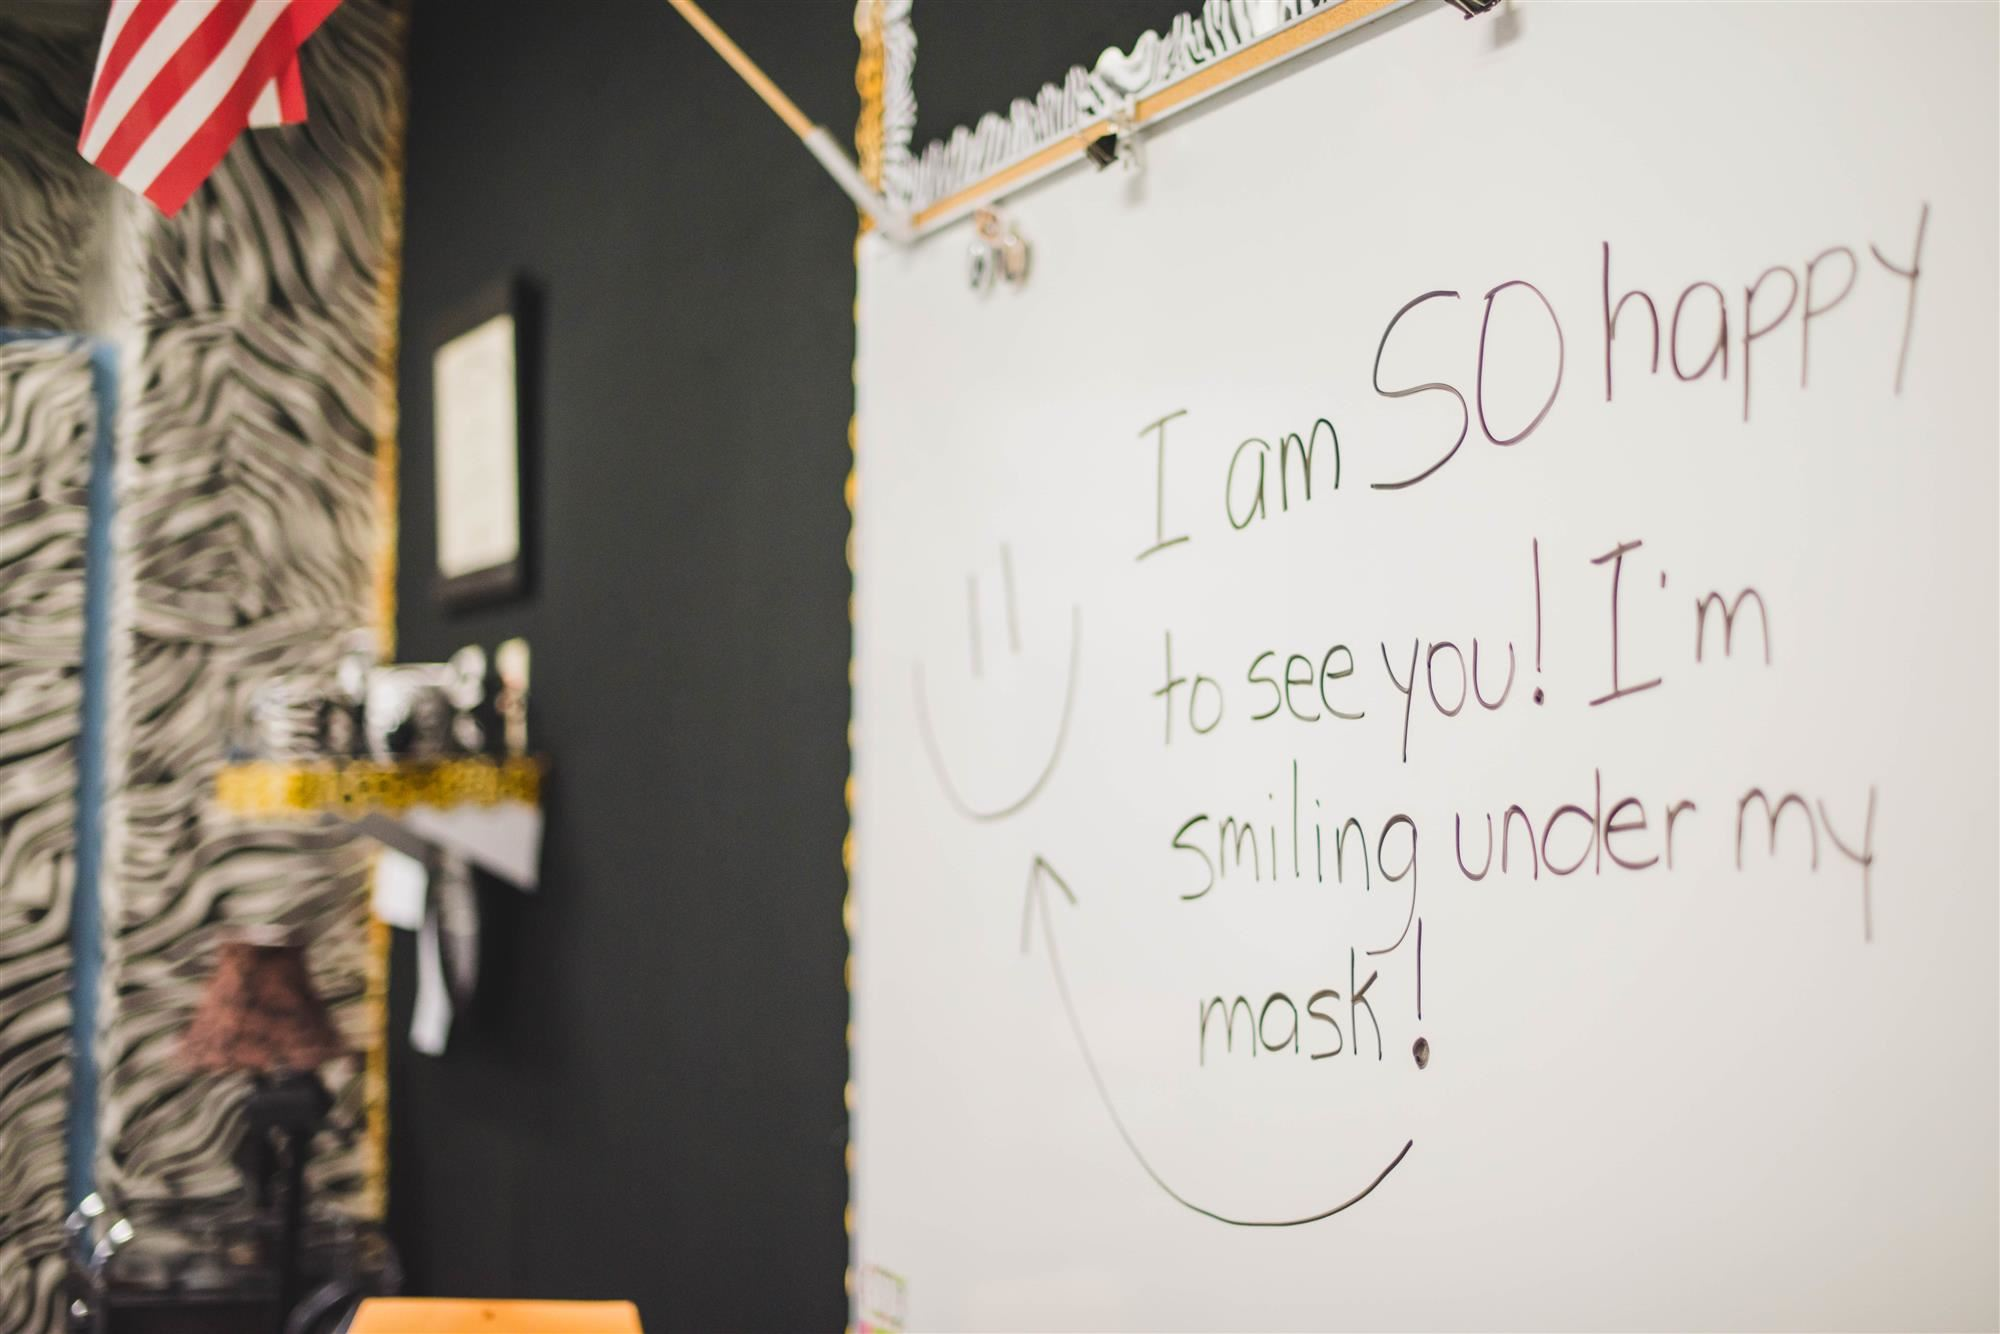 "Whiteboard has text ""I am SO happy to see you! I'm smiling under my mask!"""